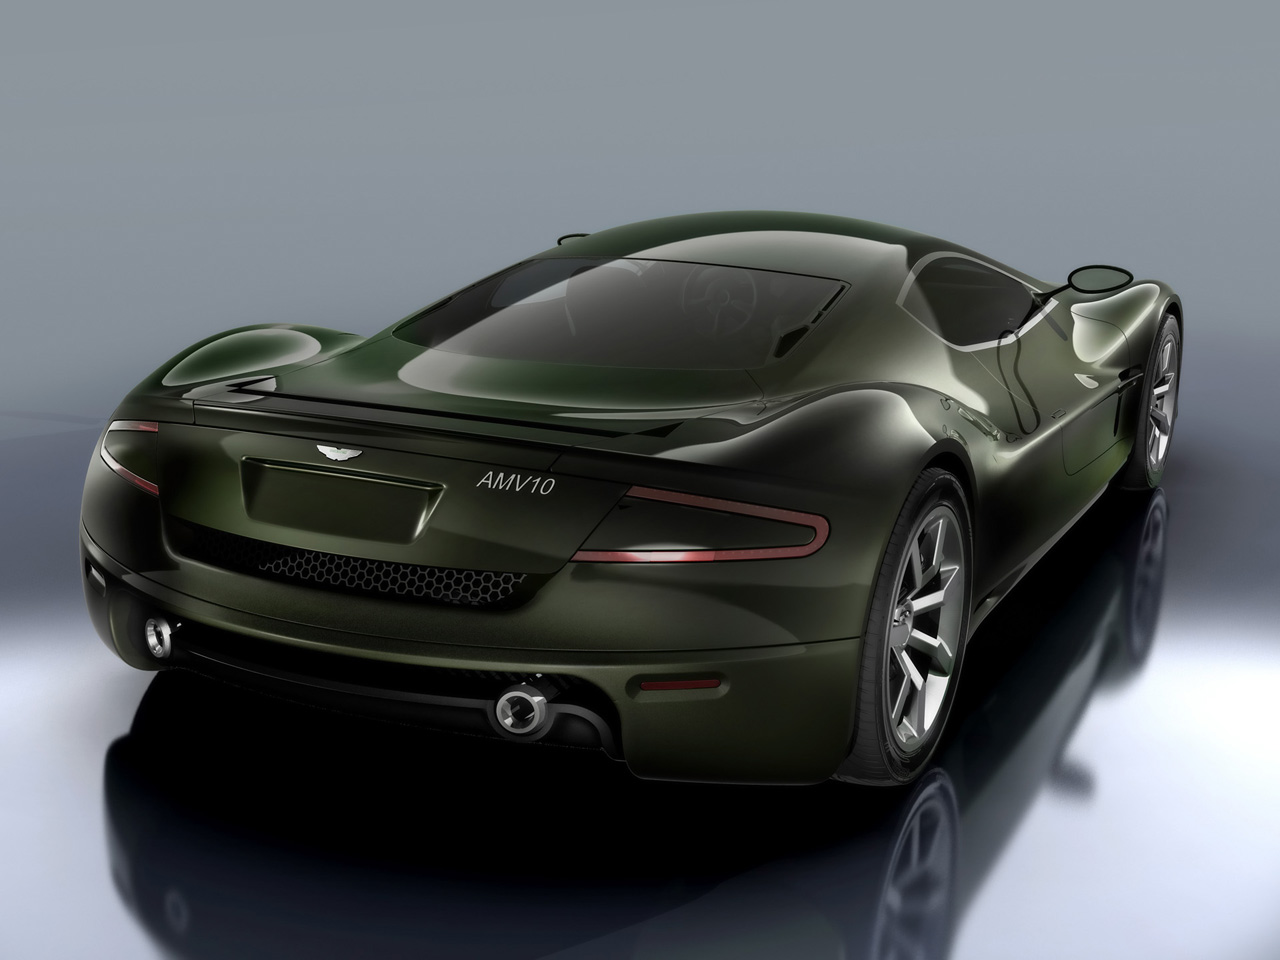 High Quality Aston Martin AMV10